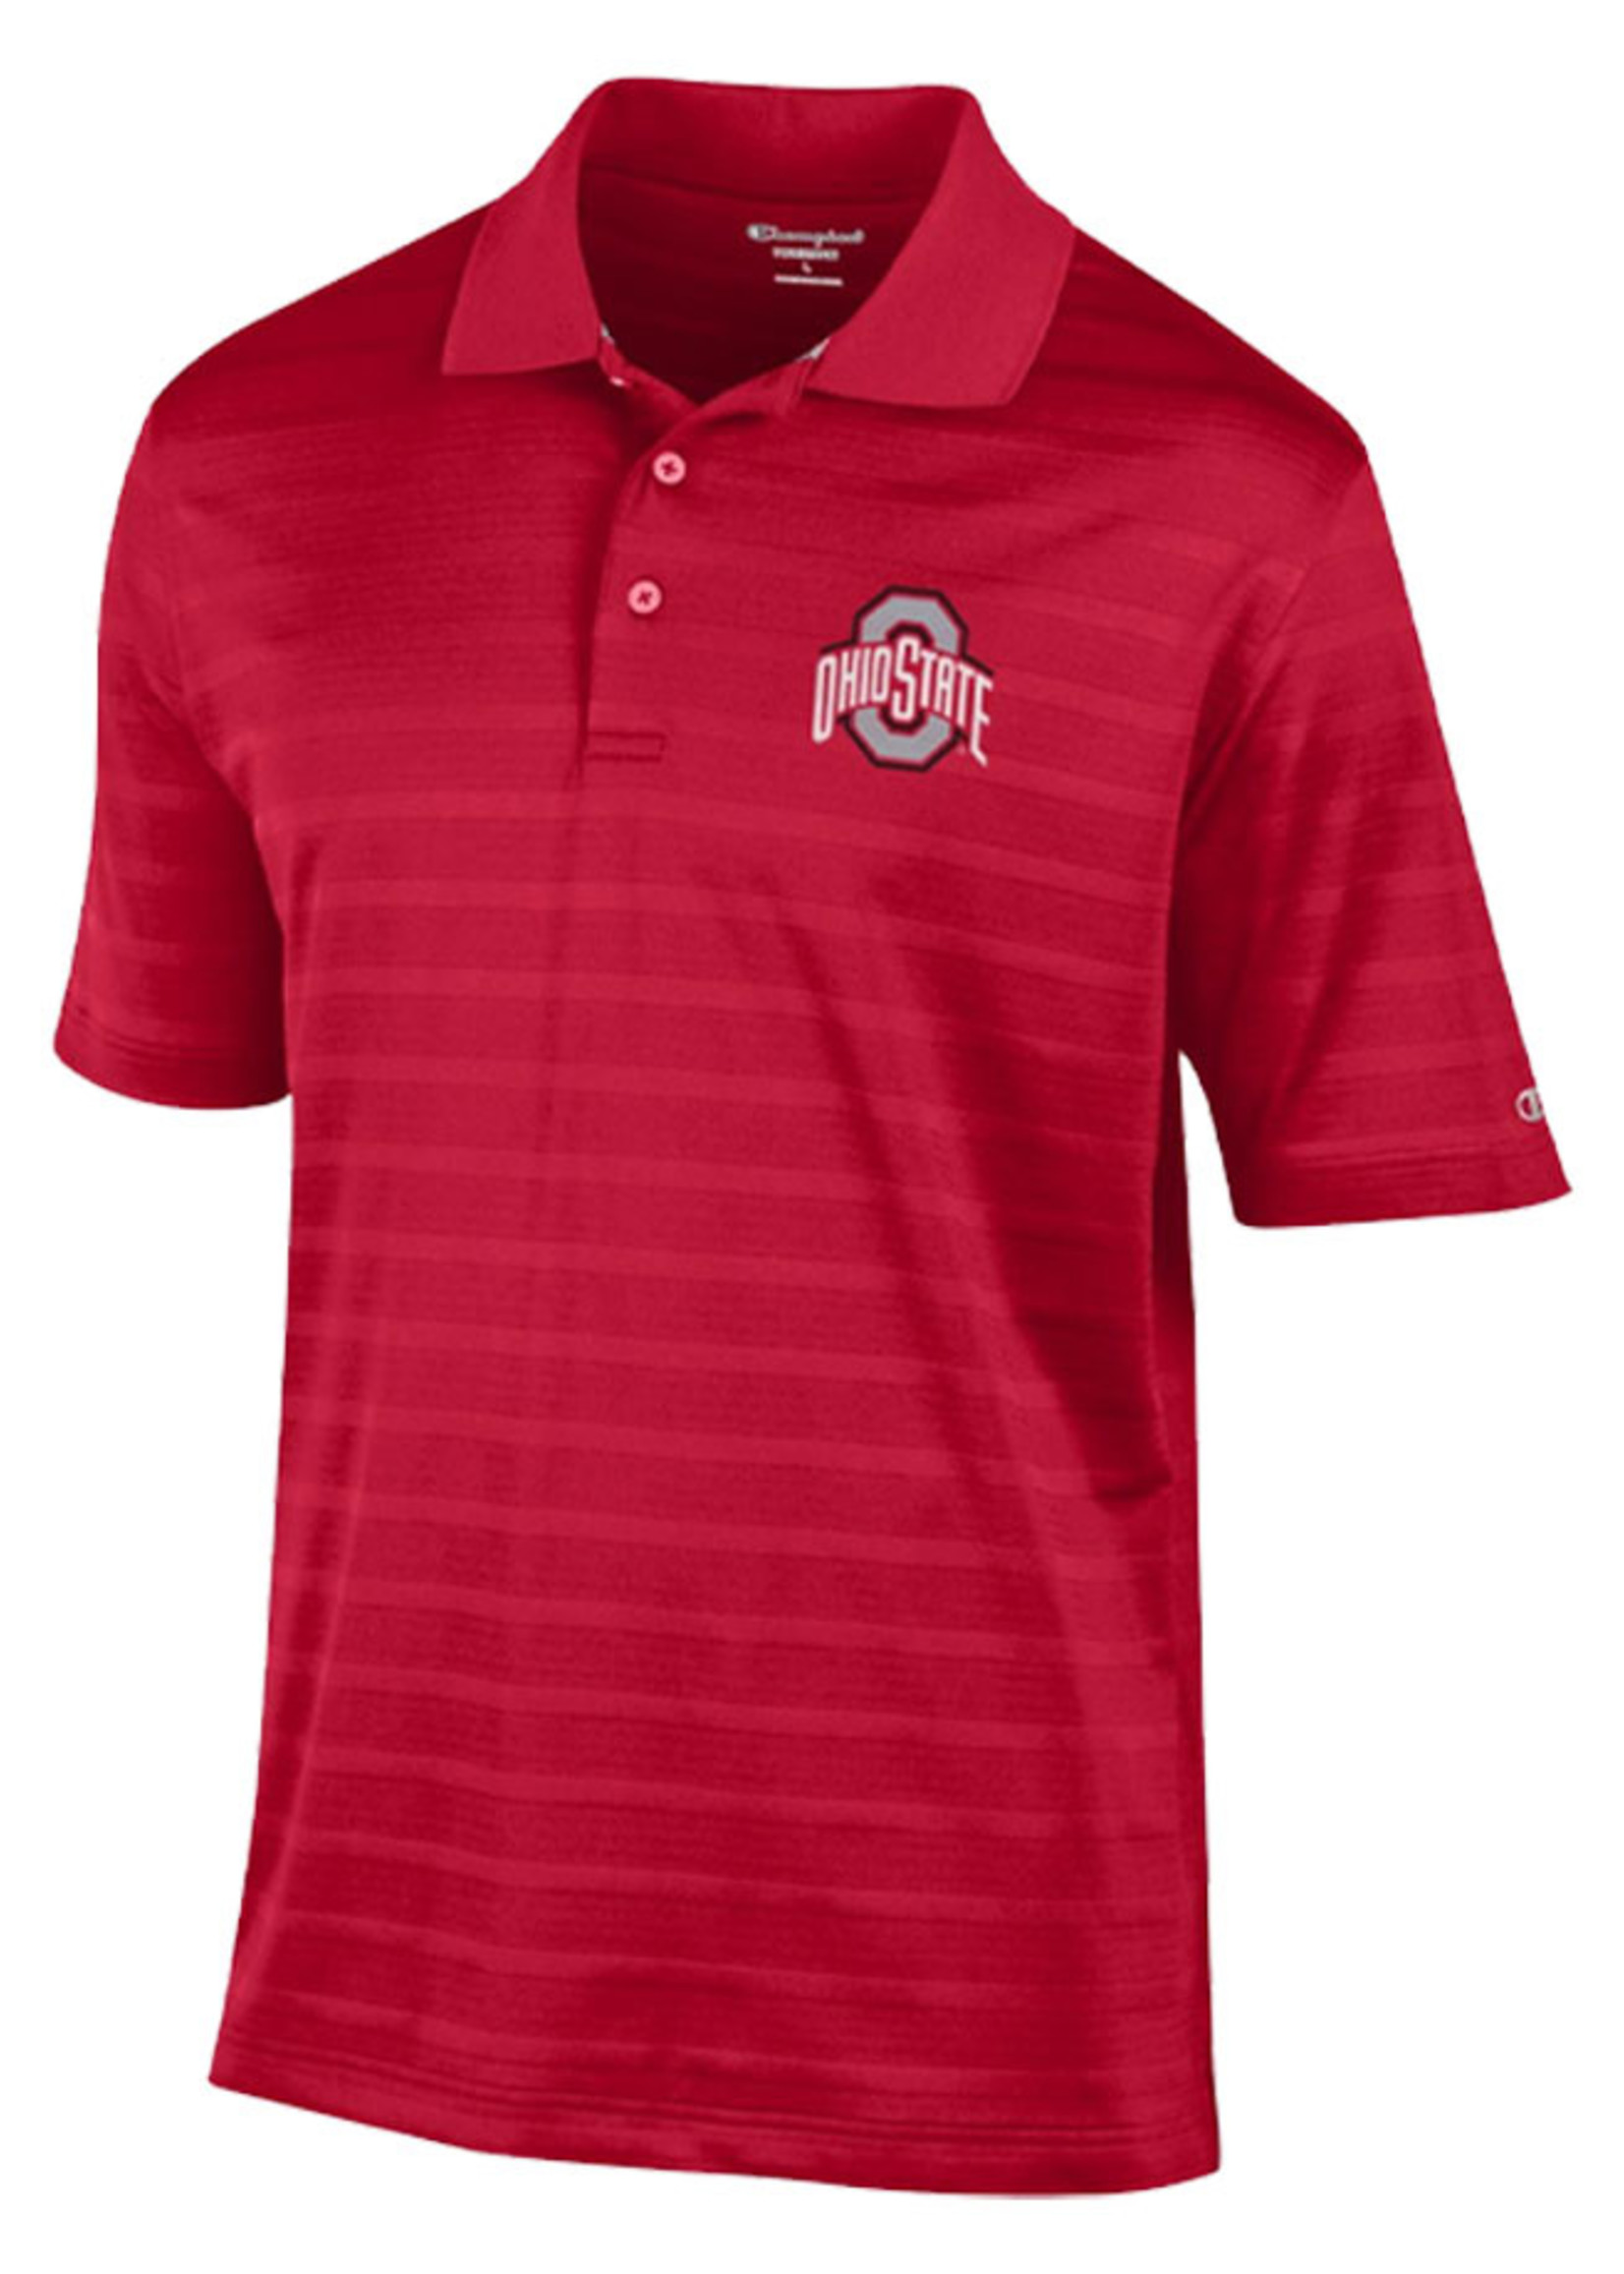 Champion Ohio State Buckeyes Textured Solid Polo